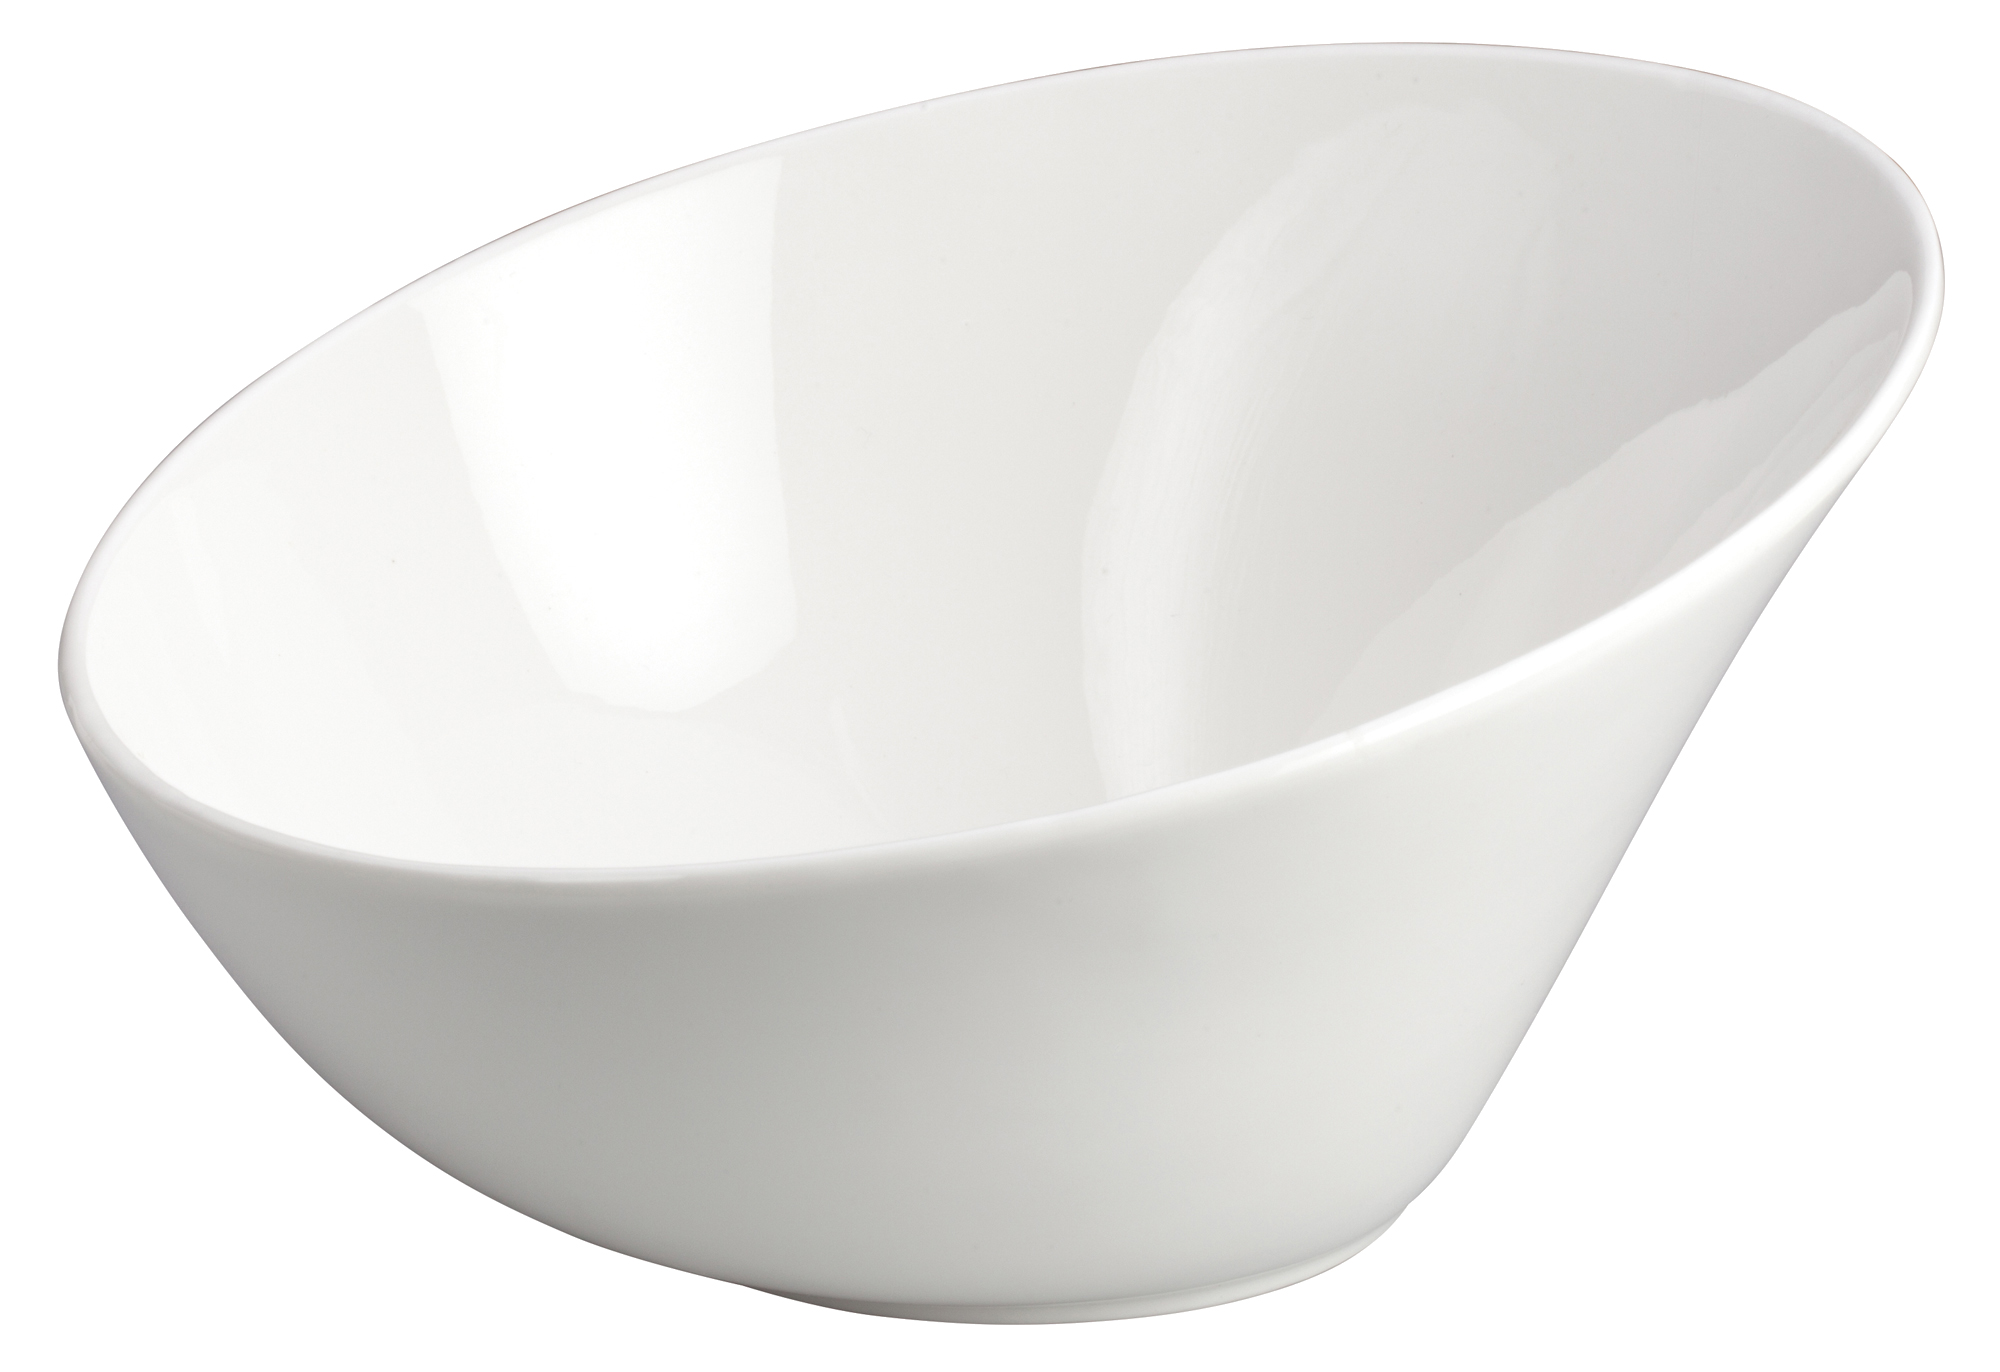 Winco WDP003-203 china, bowl, 33 - 64 oz